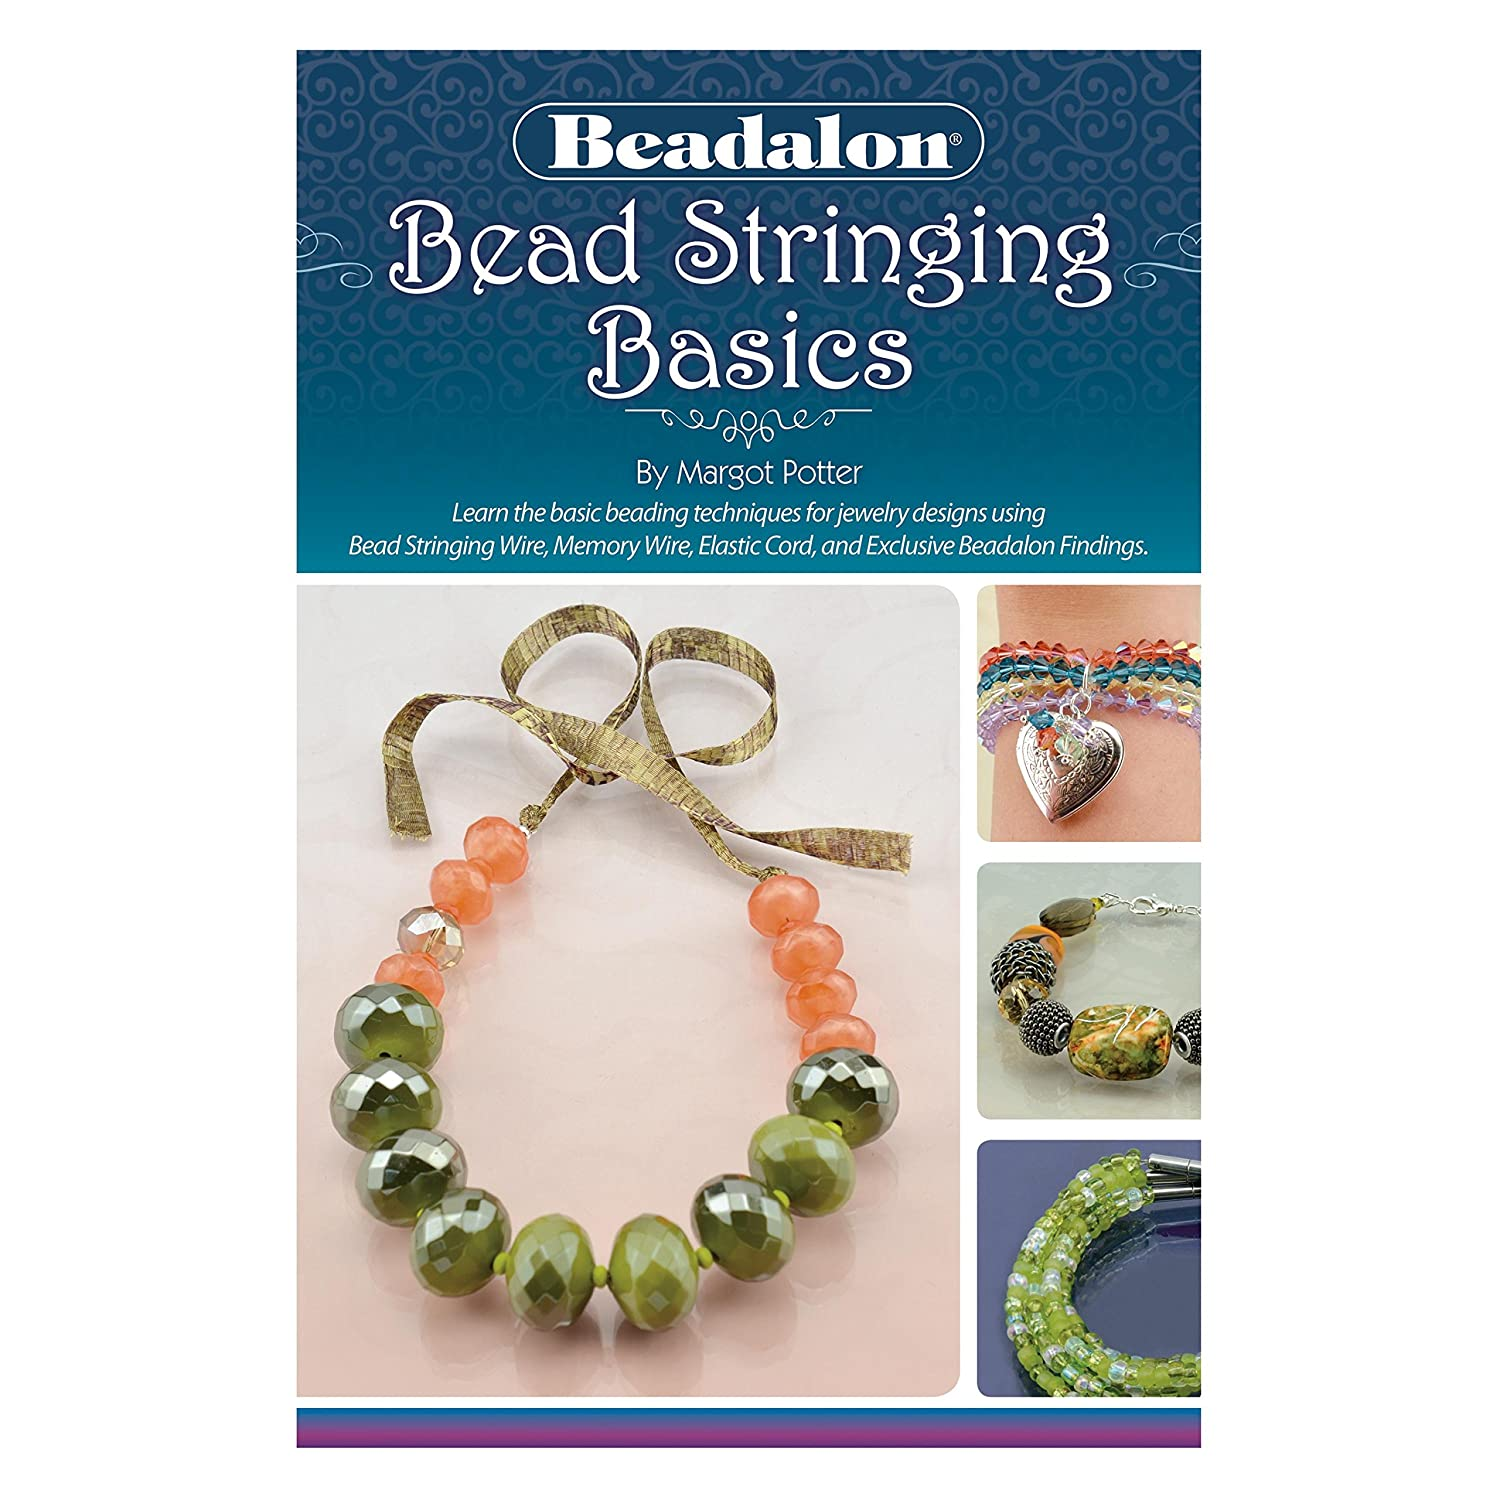 Beadalon Bead String Basics Booklet by Margot Potter